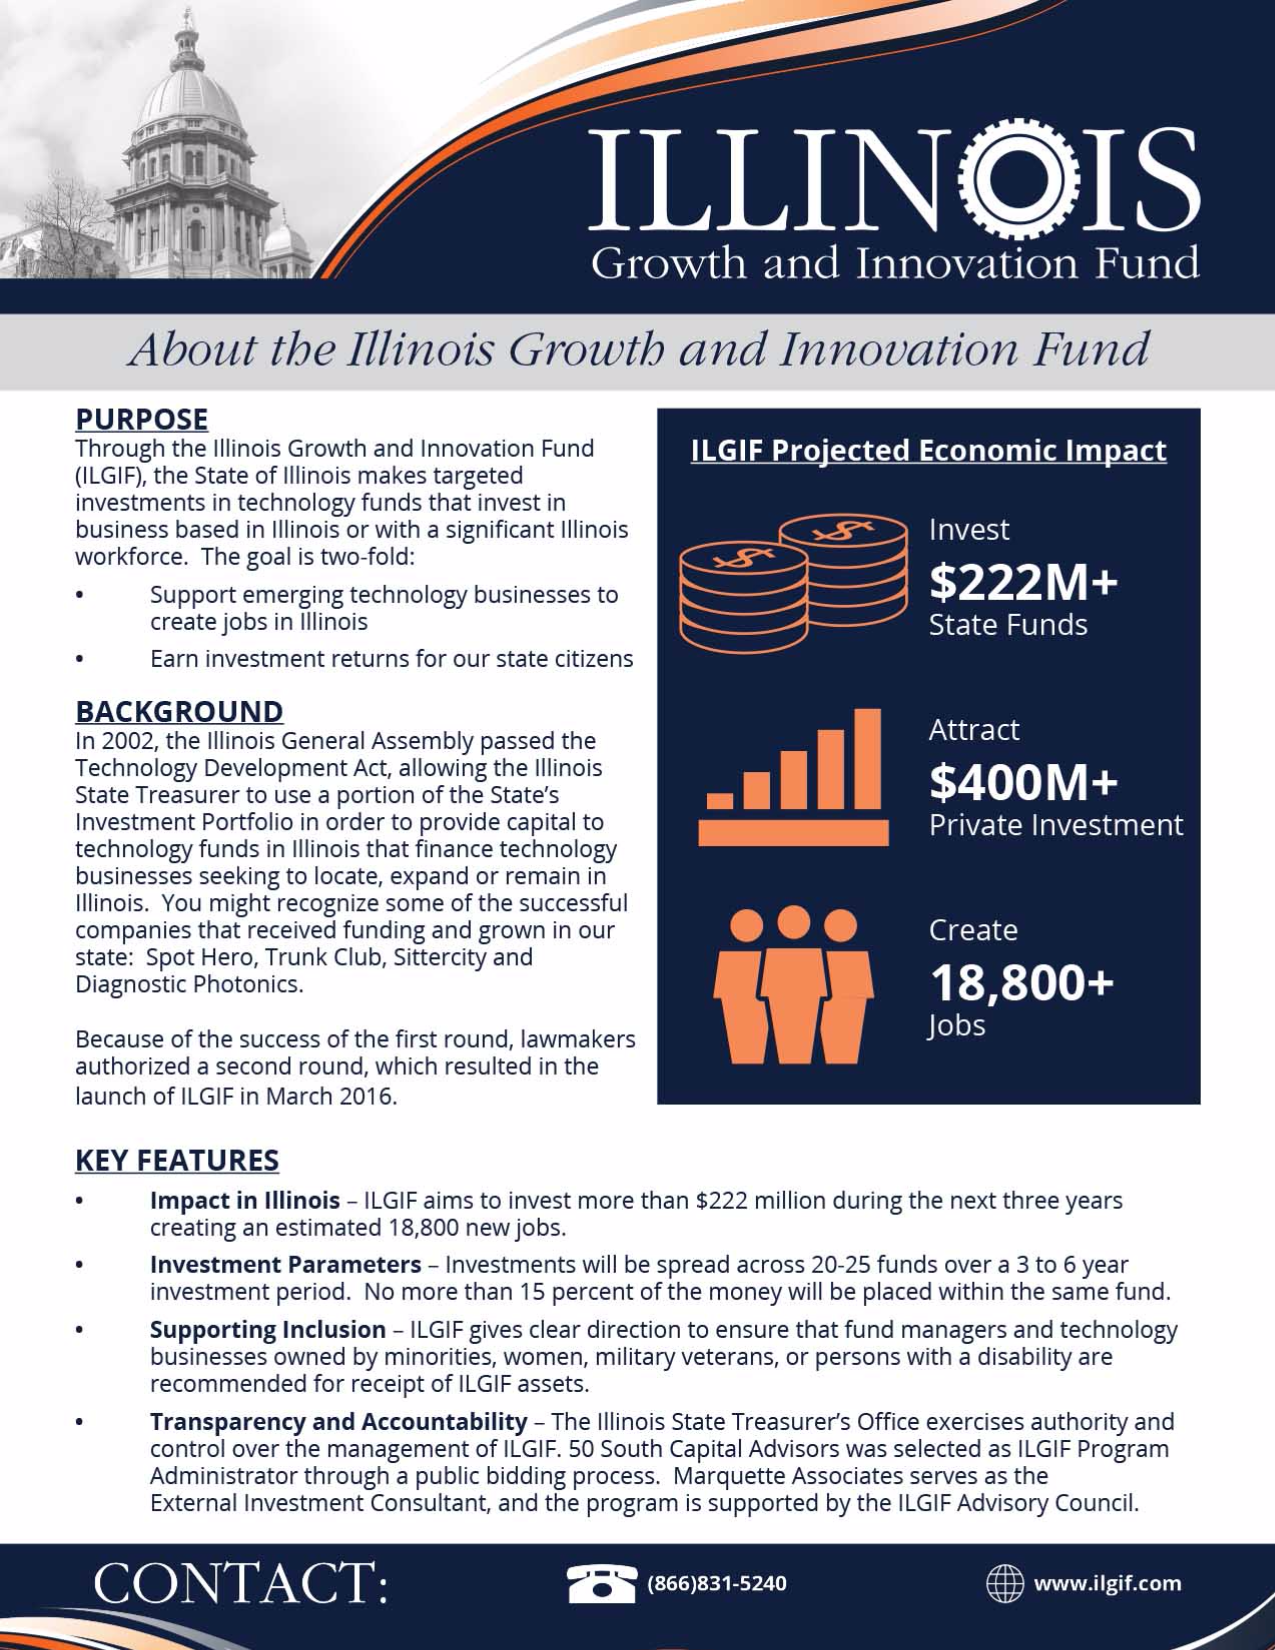 Illinois Growth and Innovation Fund Flyer